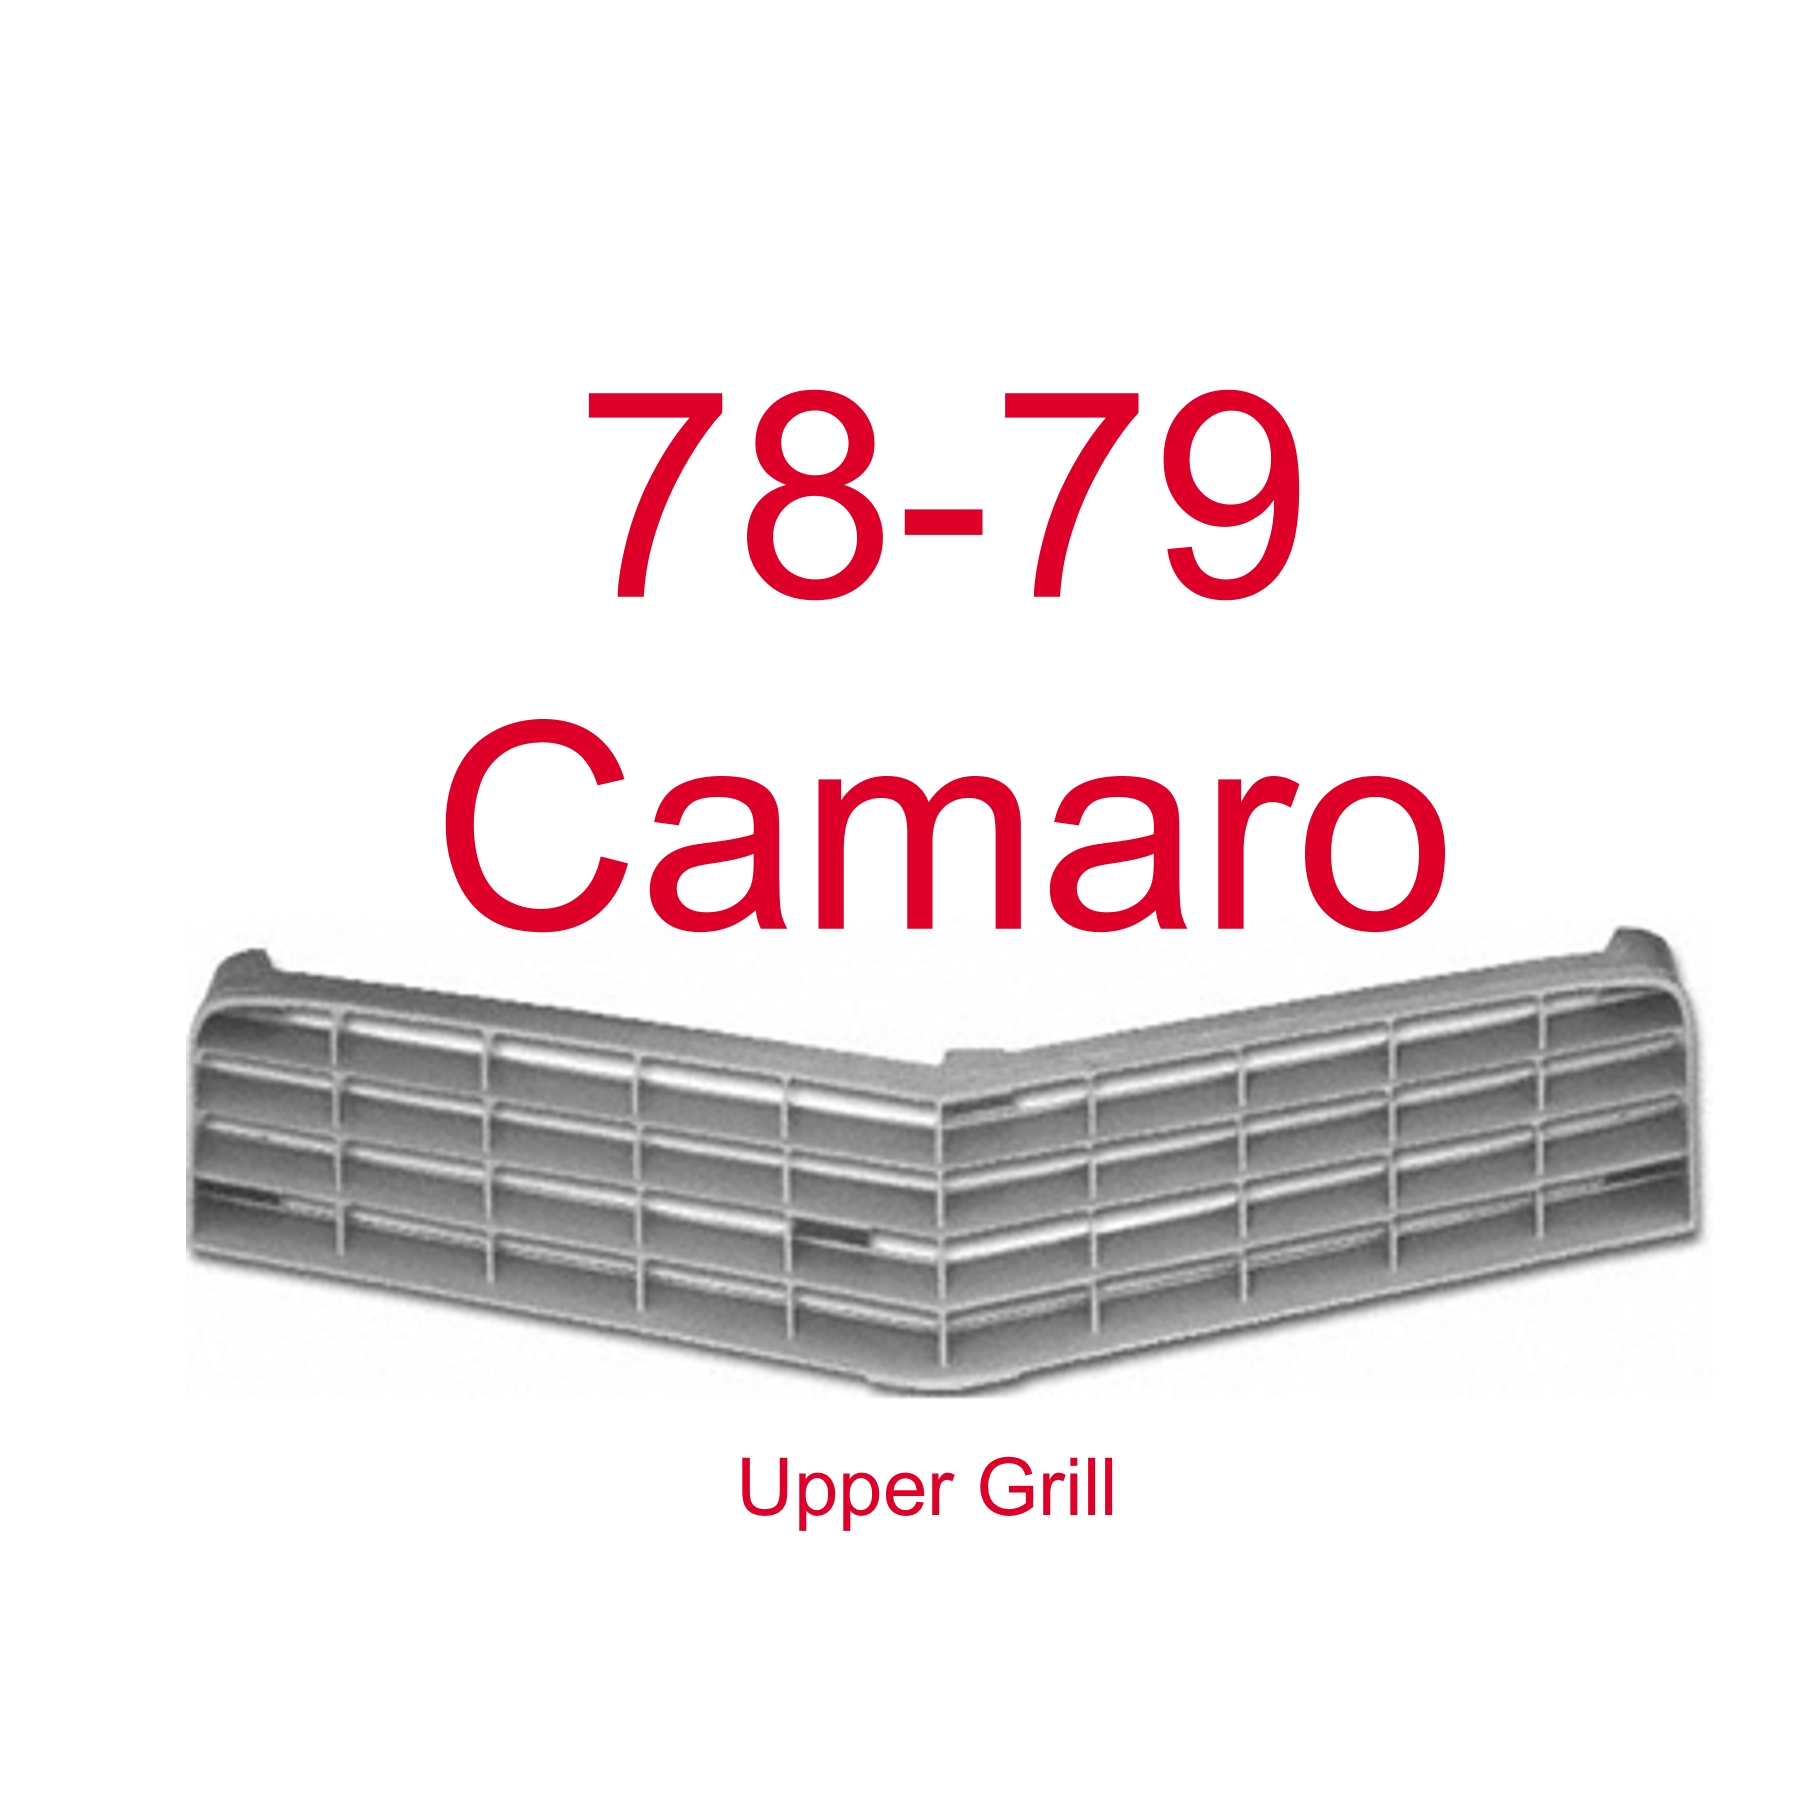 78-79 Chevy Camaro Upper Grill, Argent In Color